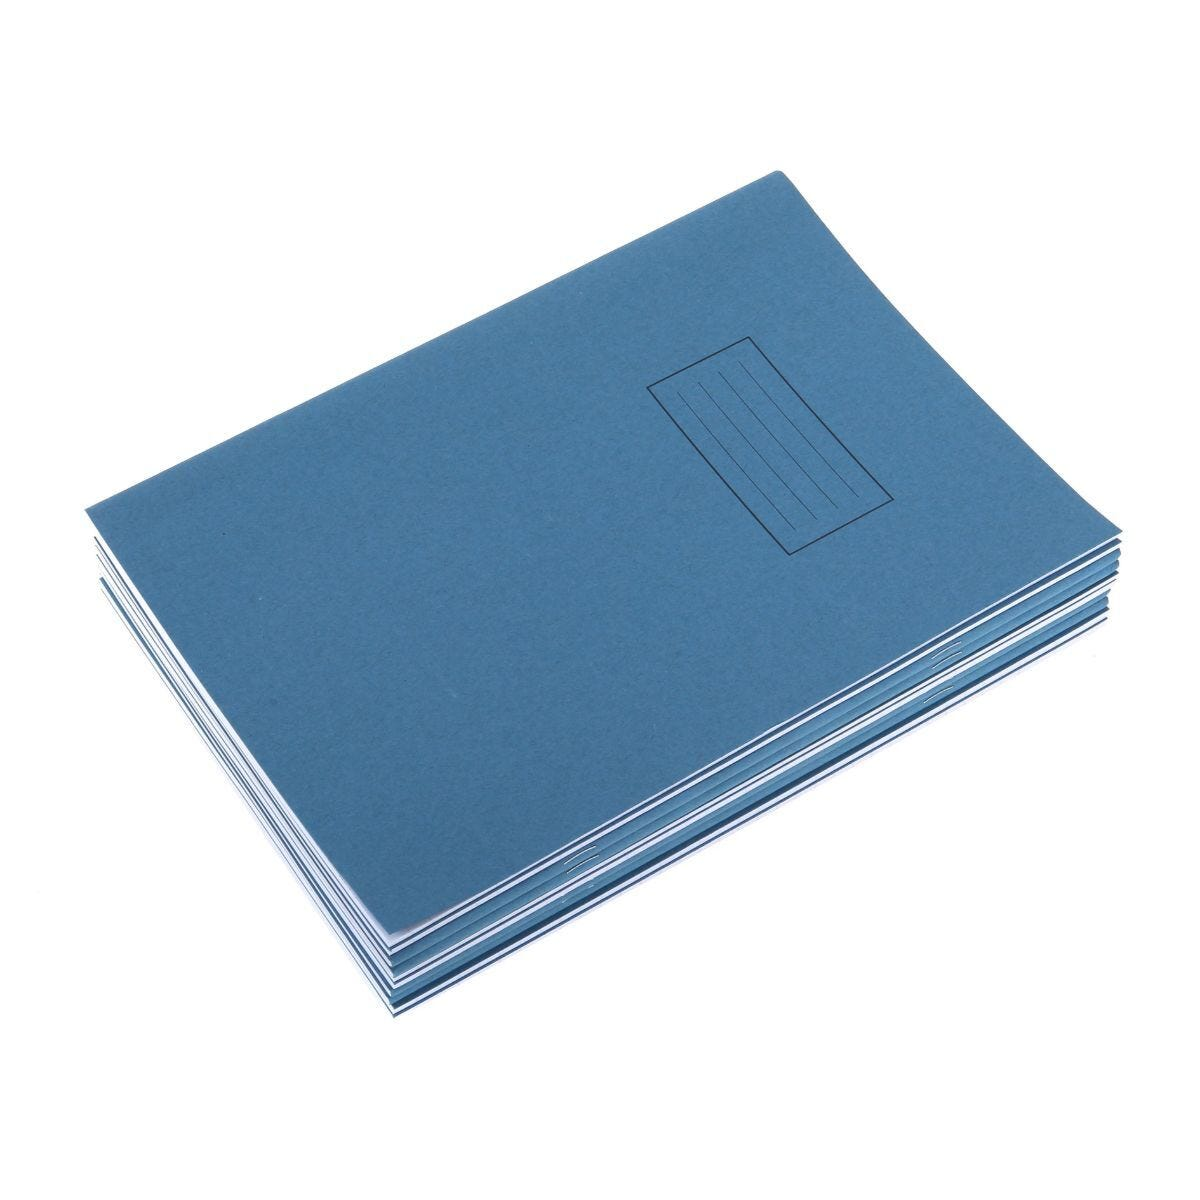 Silvine Exercise Book A4 Ruled 75gsm Pack of 10